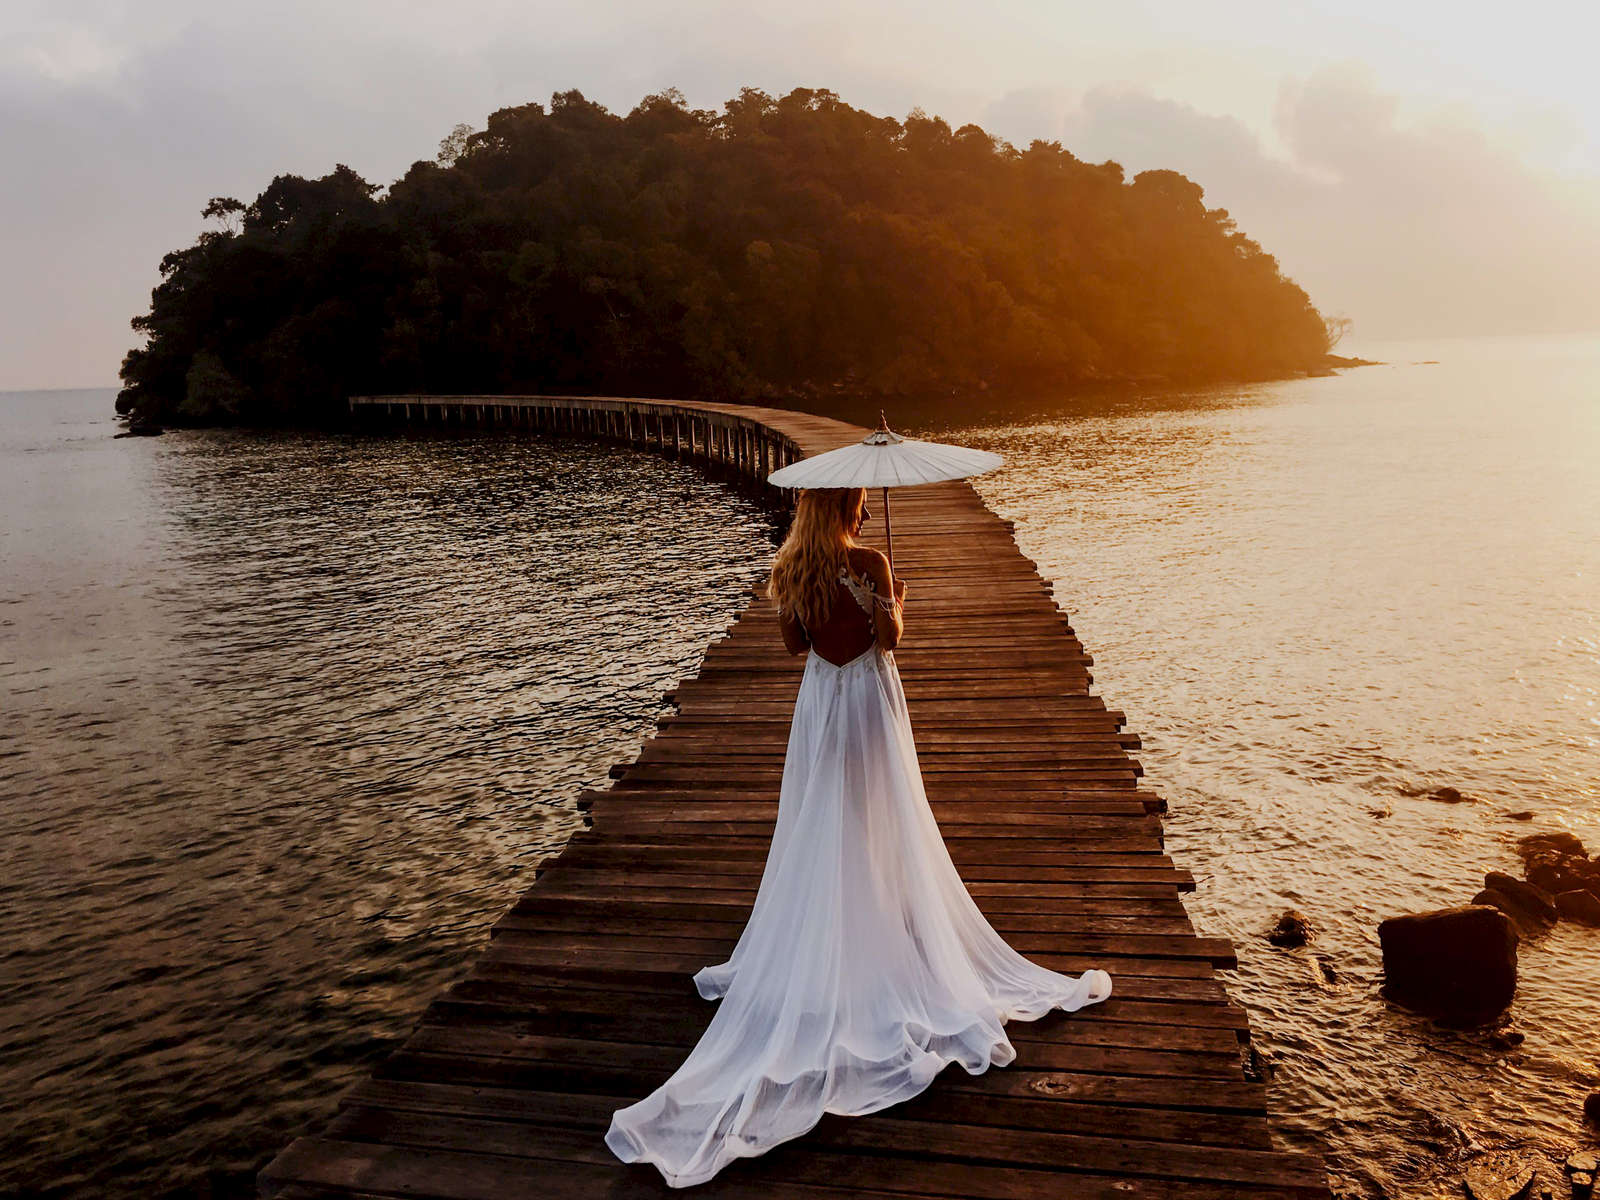 Bride-in-a-wedding-dress-umbrella-song-saa-resort_001A